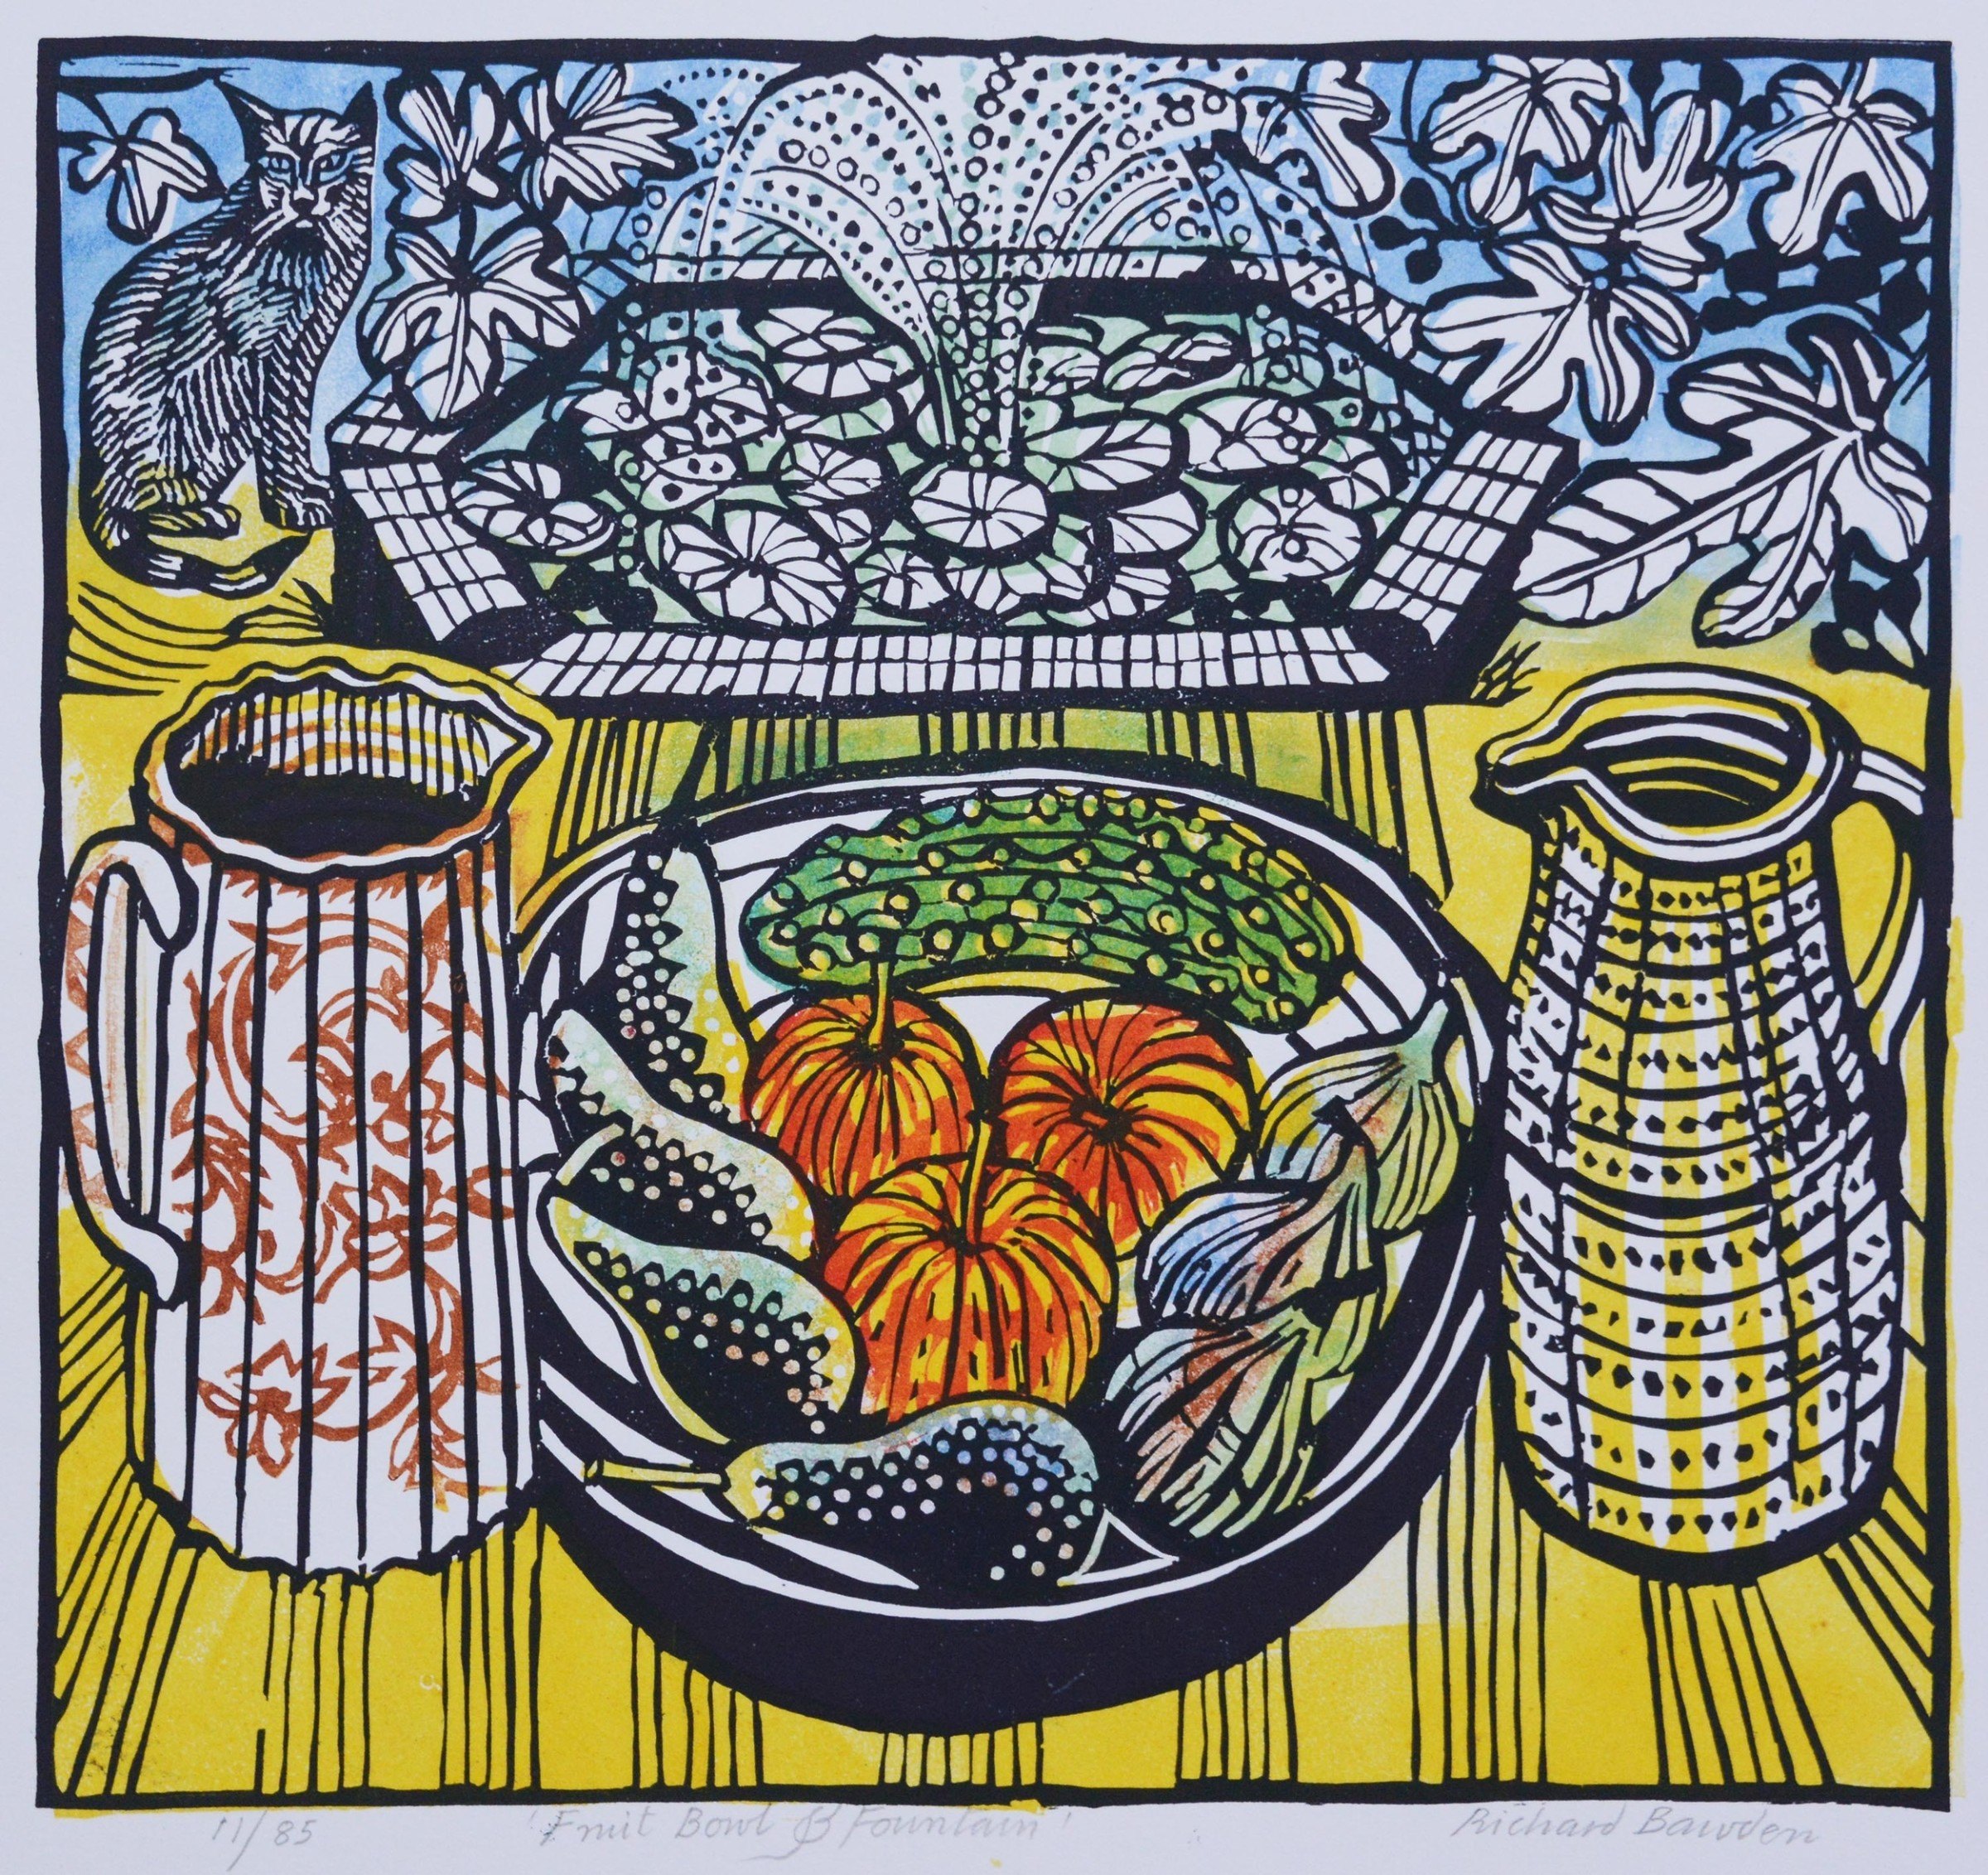 <span class=&#34;link fancybox-details-link&#34;><a href=&#34;/artists/38-richard-bawden/works/10869-richard-bawden-fruit-bowl-and-fountain/&#34;>View Detail Page</a></span><div class=&#34;artist&#34;><span class=&#34;artist&#34;><strong>Richard Bawden</strong></span></div>